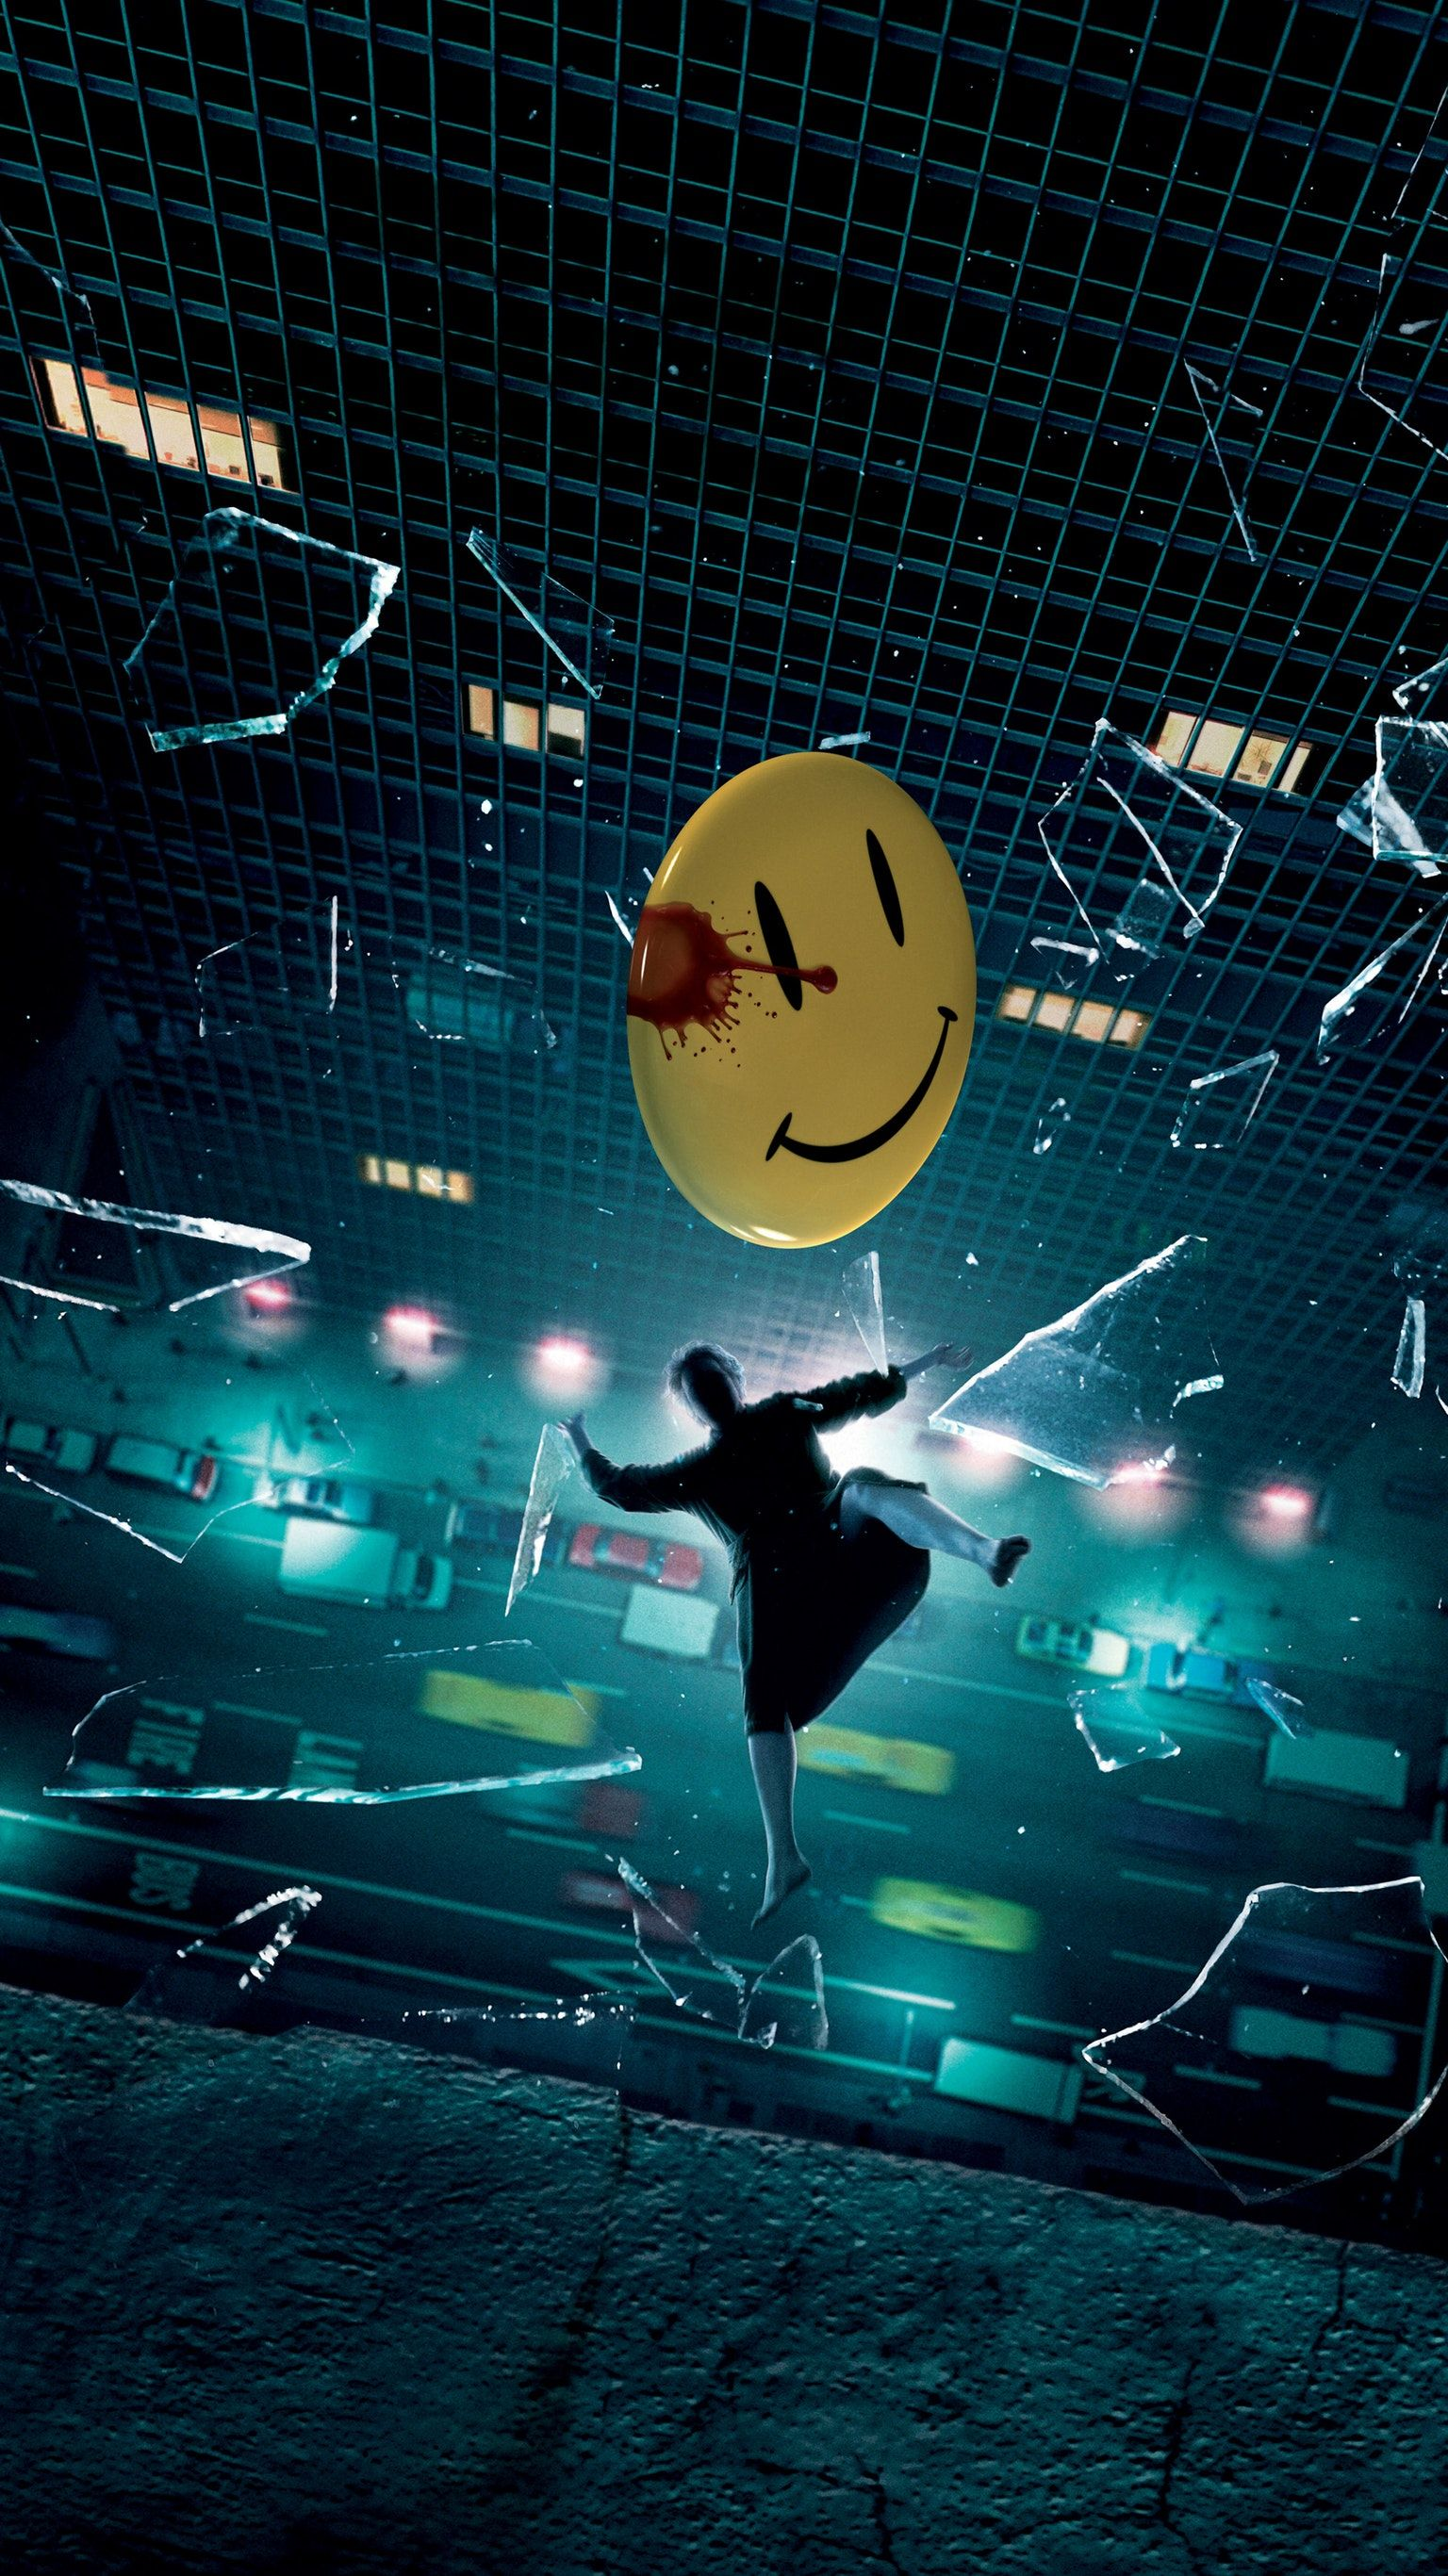 Watchmen 2009 Phone Wallpaper Moviemania Watchmen Movie Wallpapers Poster